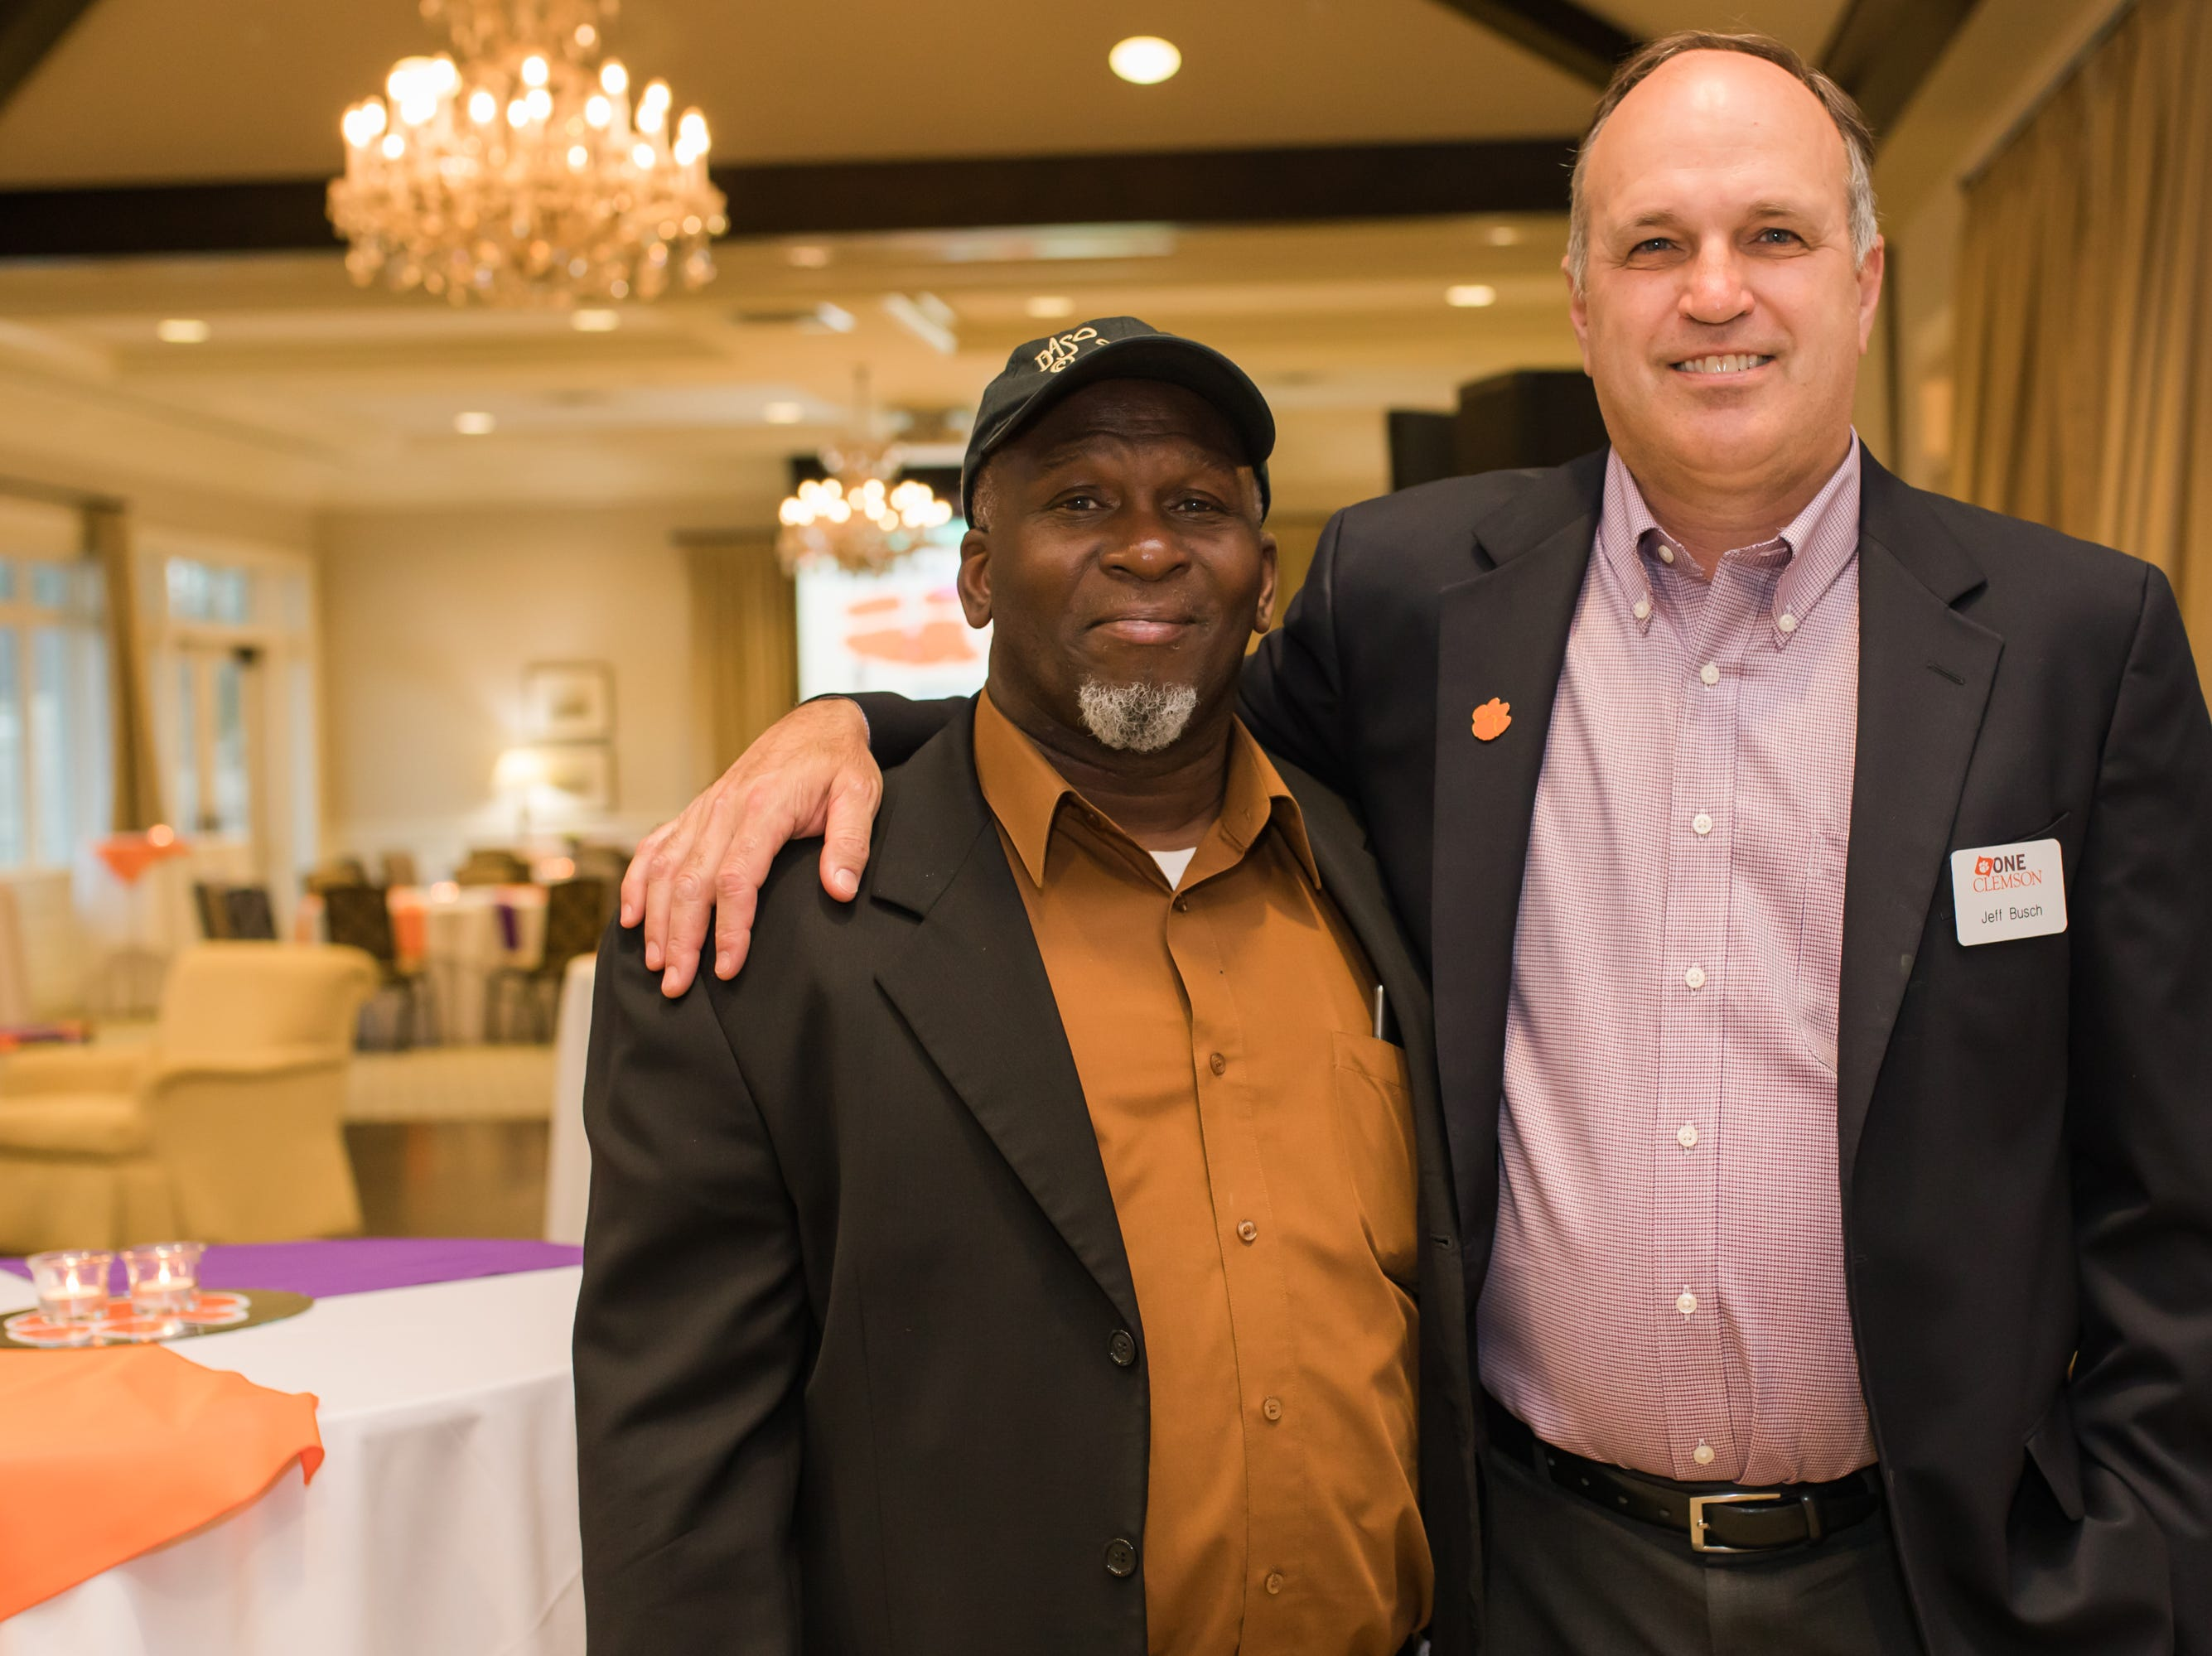 The Clemson ONE Party and Auction was held at the Greenville Country Club and included heavy hors d'oeuvres, open bar, music, silent auction and live auction. Clemson favorites at this year's Main Event included Brian Dawkins, Ben Boulware, CJ Spiller and Tajh Boyd. Proceeds from this event are used to fund Clemson student-athlete internships.